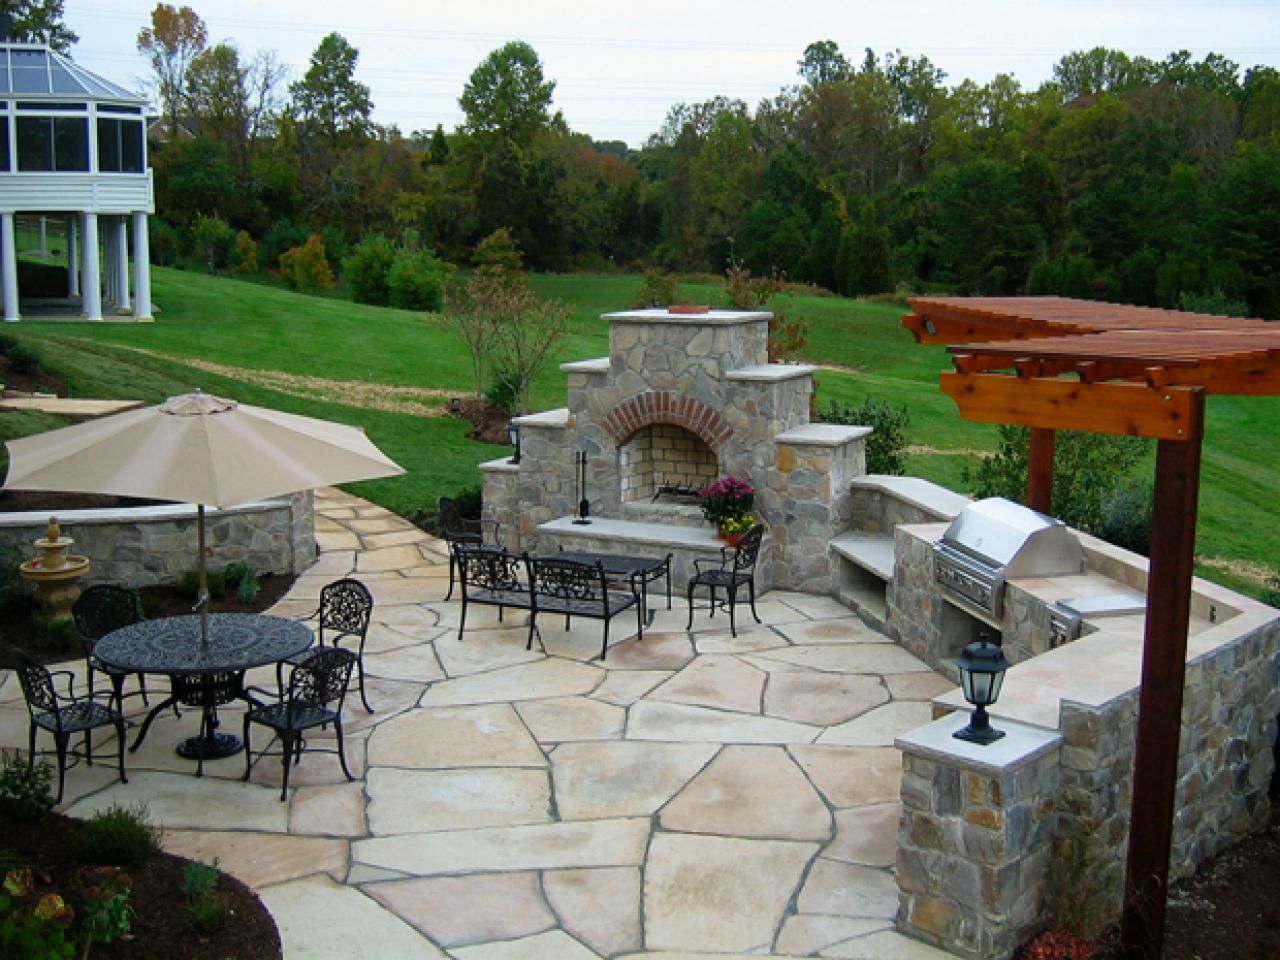 Patio ideas outdoor spaces patio ideas decks for Porch and patio designs